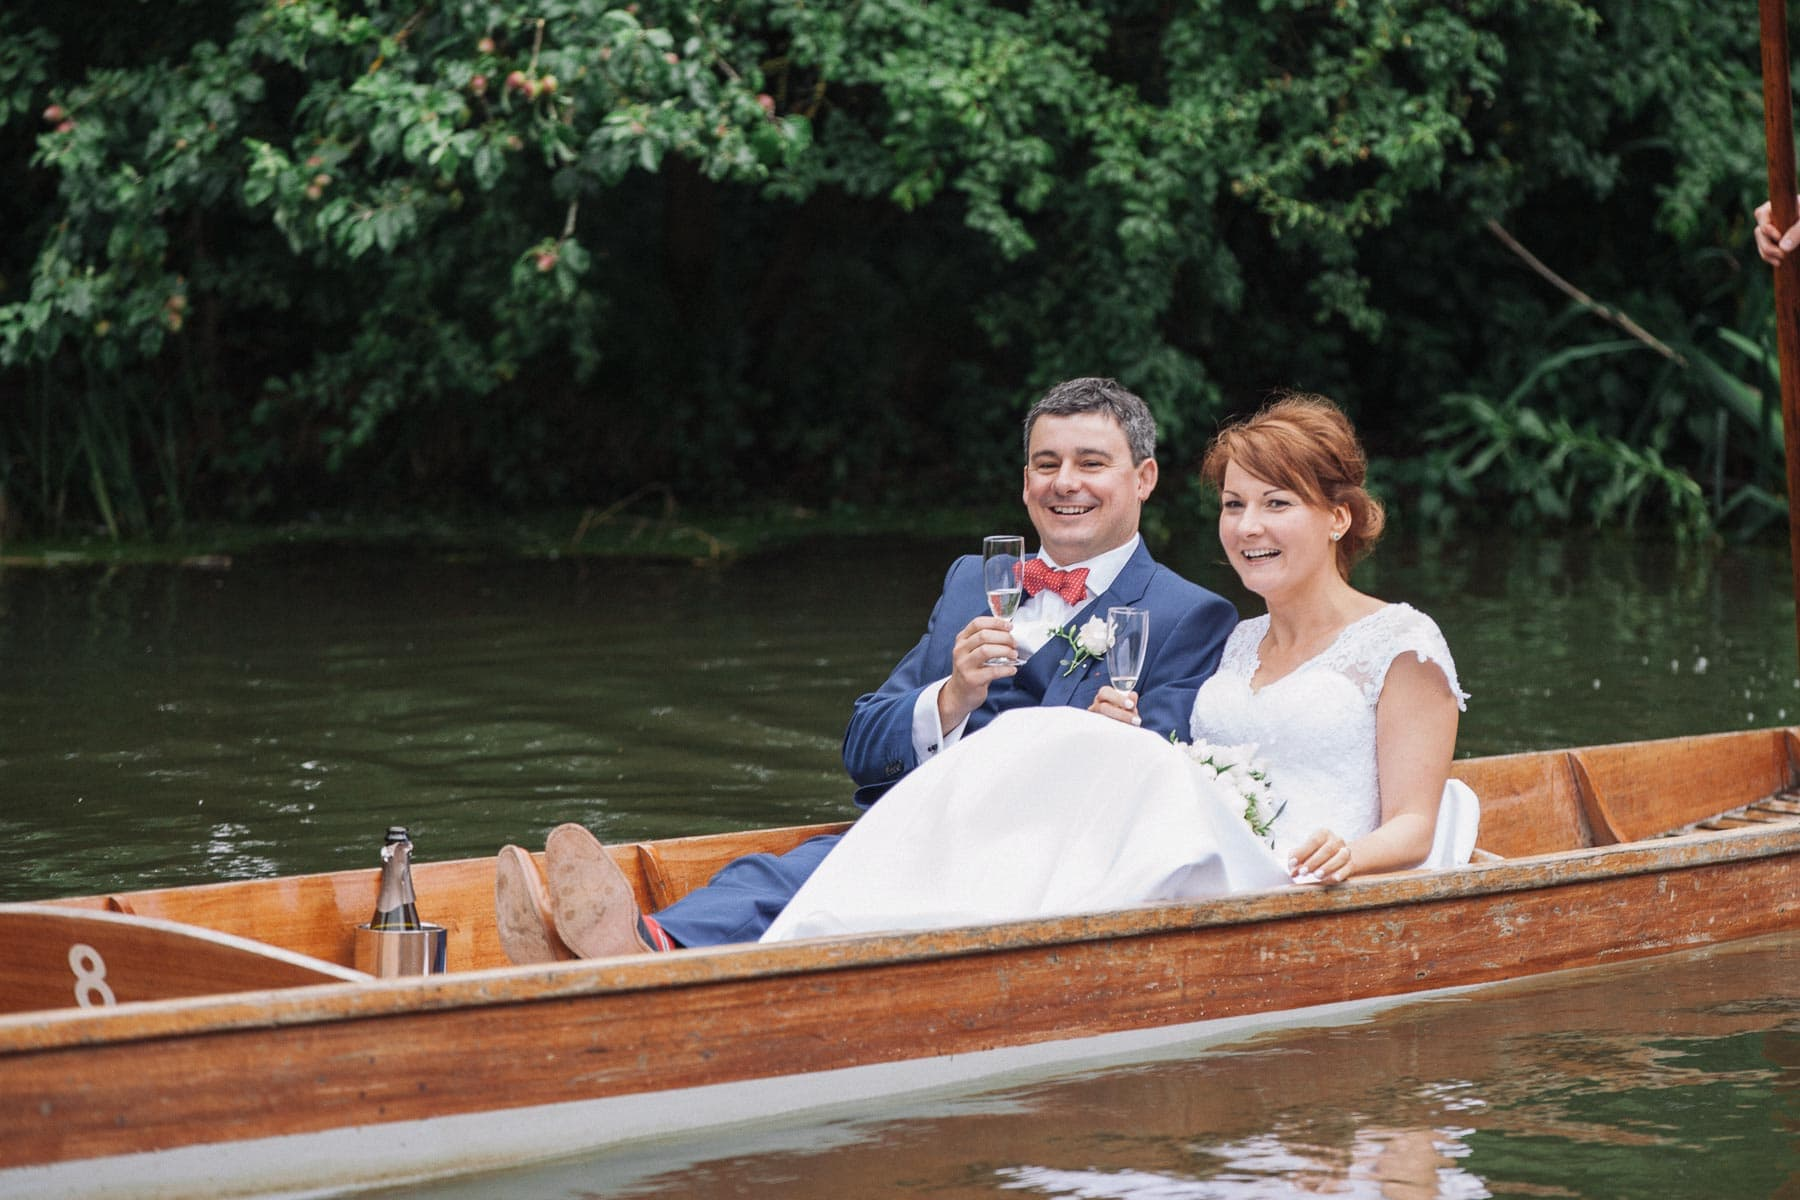 Close up of bride and groom on their punt, with champagne